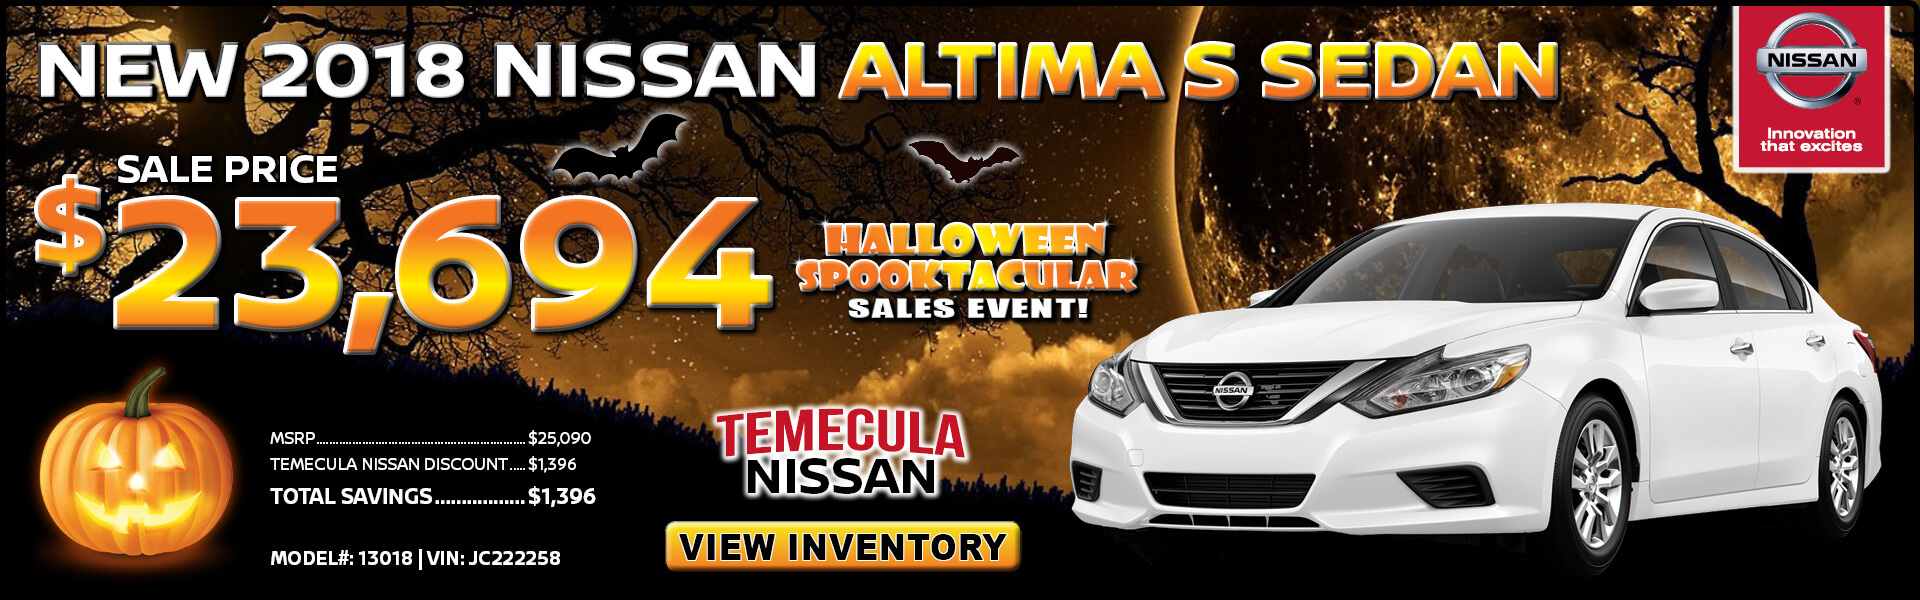 Nissan Altima $23,694 Purchase